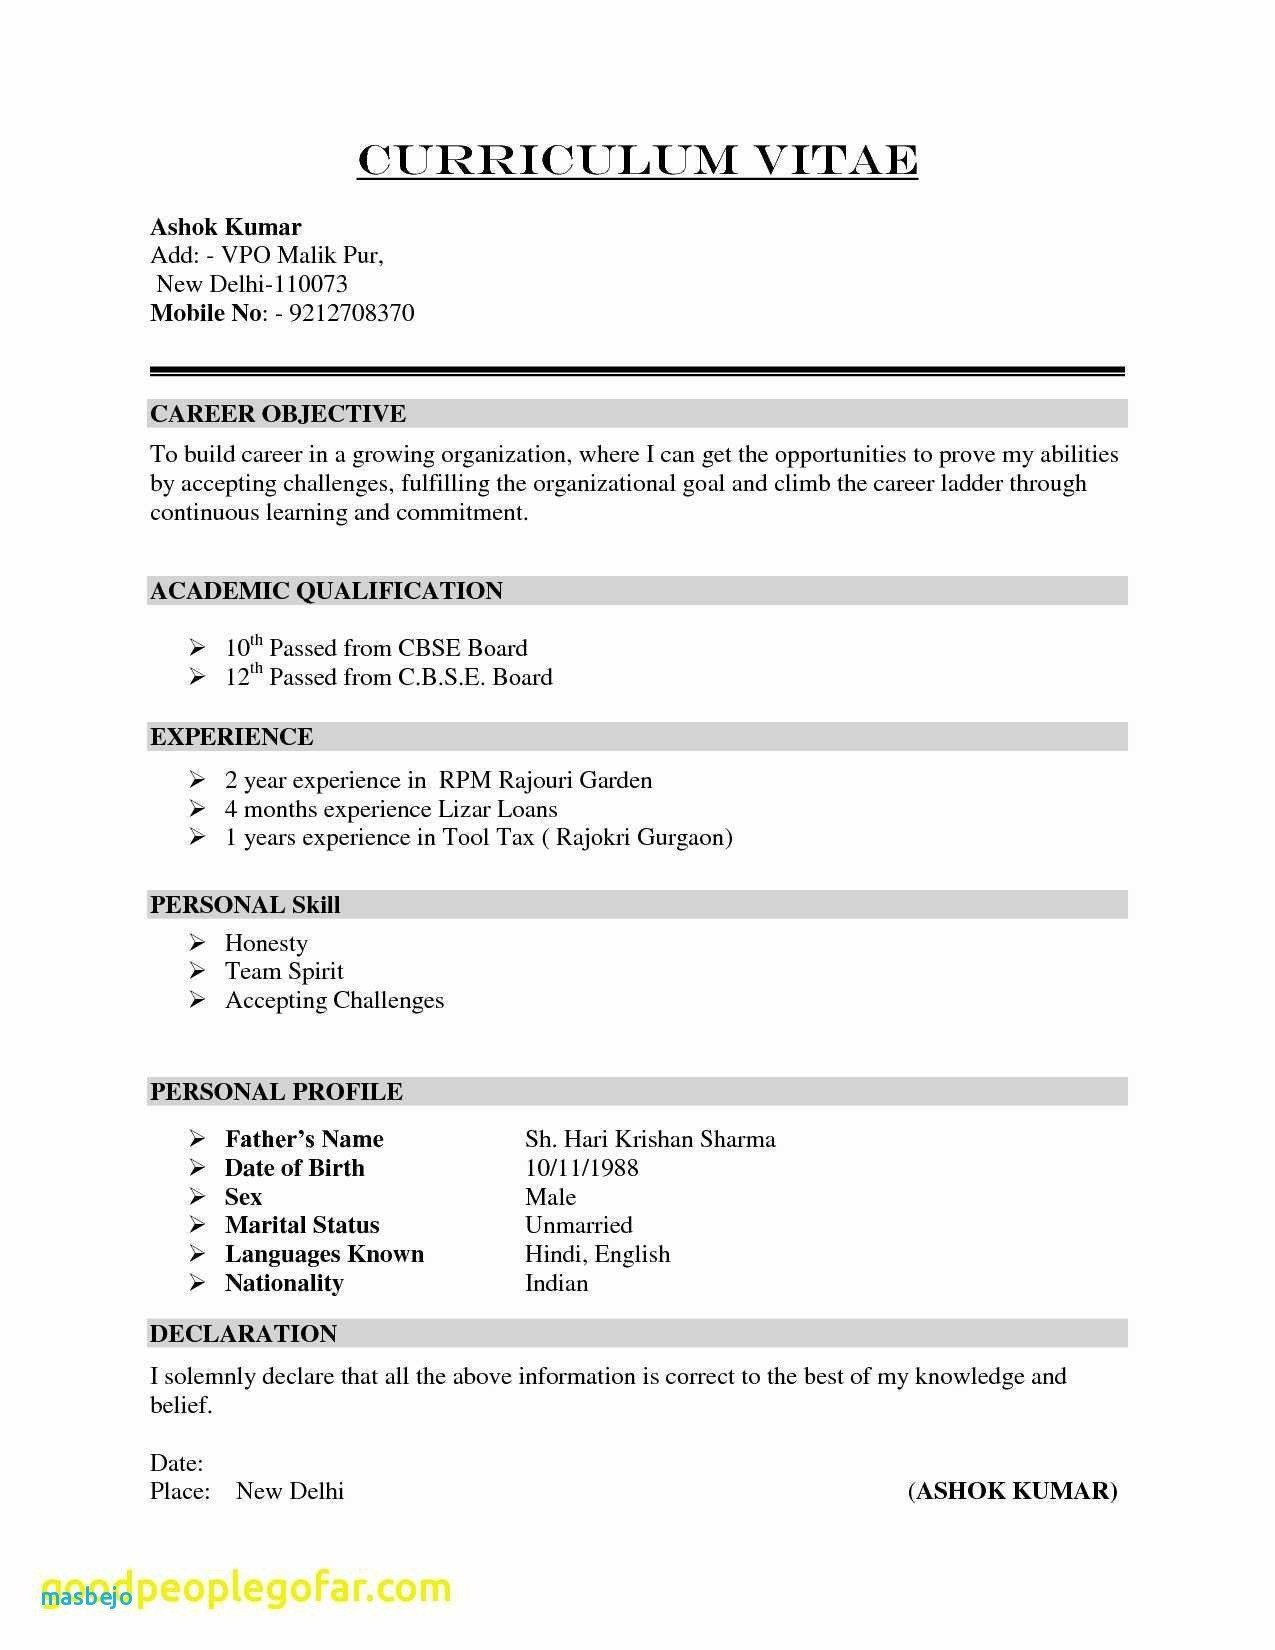 32 Inspirational Good Headline for Resume in 2020 (With